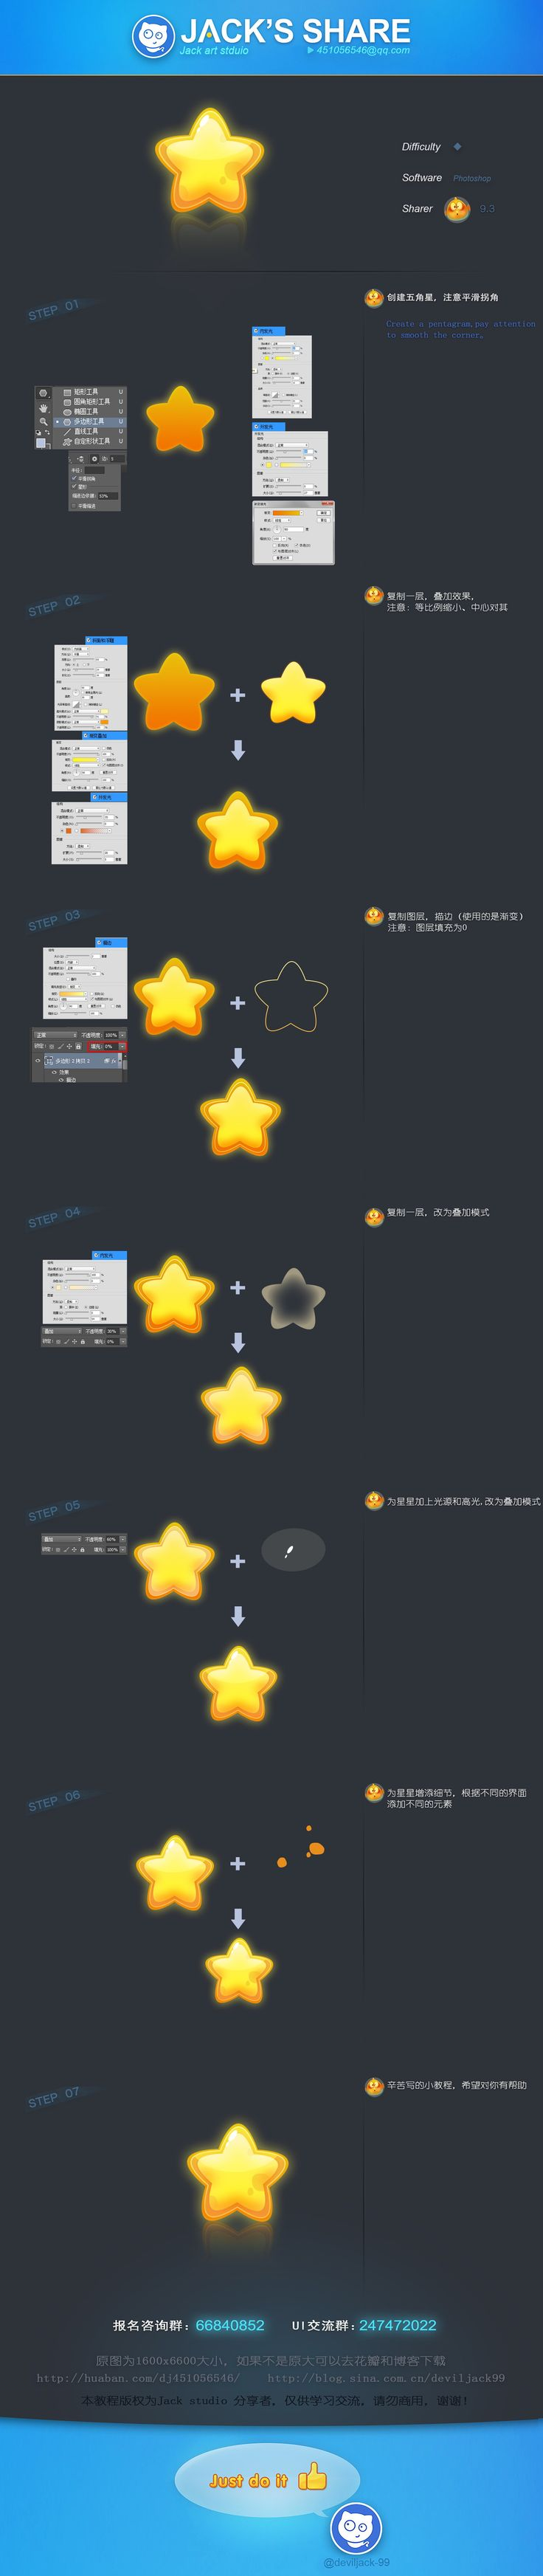 (gameui/gui/ui/icon/interface/logo/design/share图标/界面/教程/游戏设计/ui交流群247472022/ui报名群66840852) http://blog.sina.com.cn/deviljack99  http://weibo.com/u/2796854547 http://i.youku.com/Deviljack99